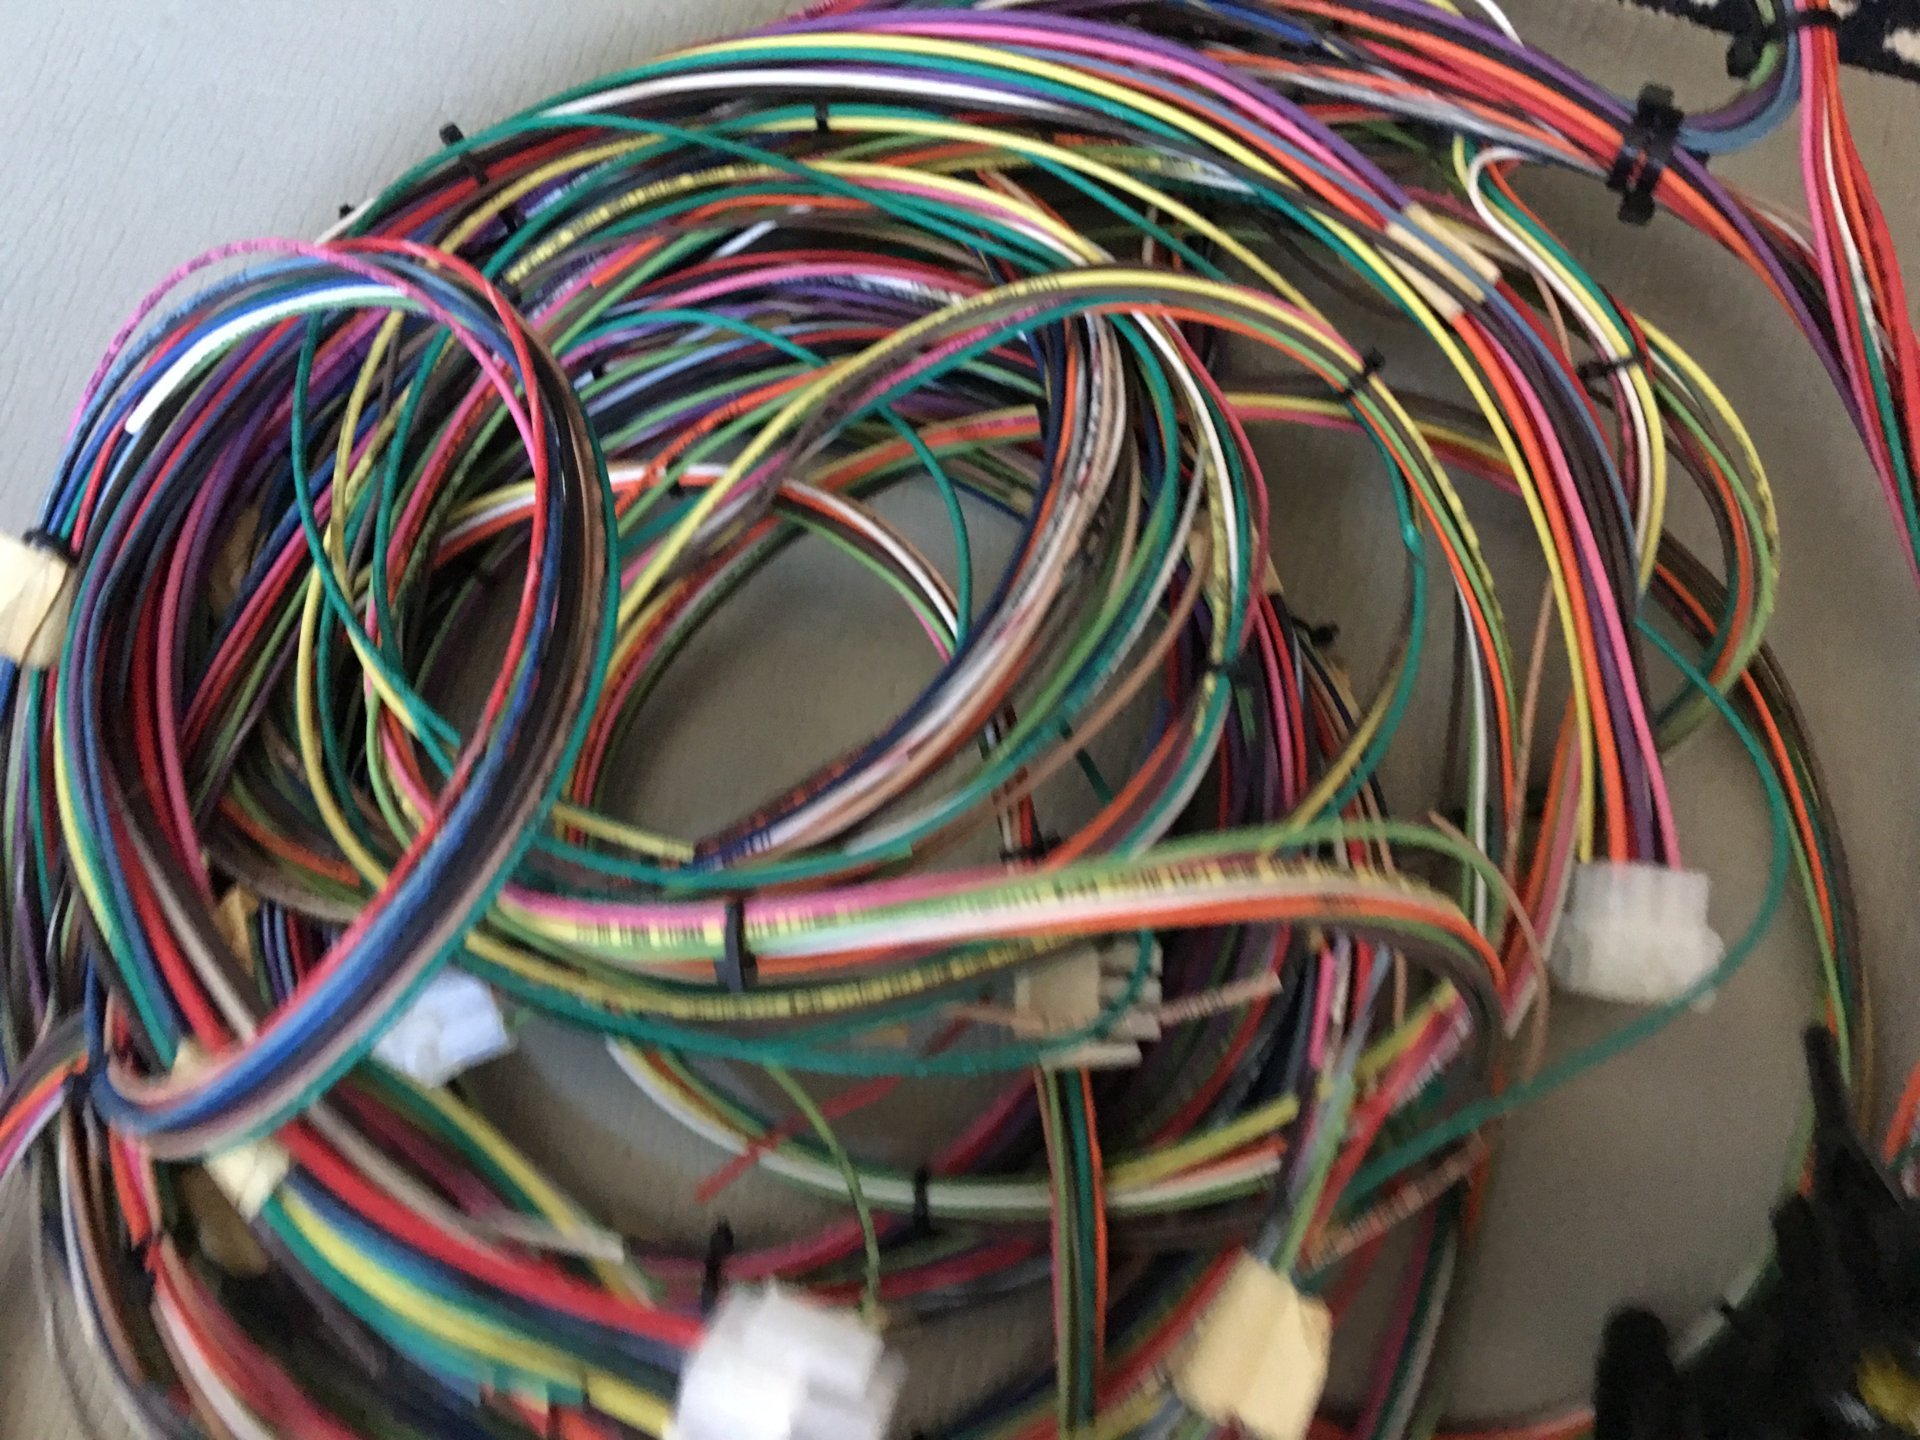 Wiring Harness For Sale : For sale painless wiring harness p n fj ih mud